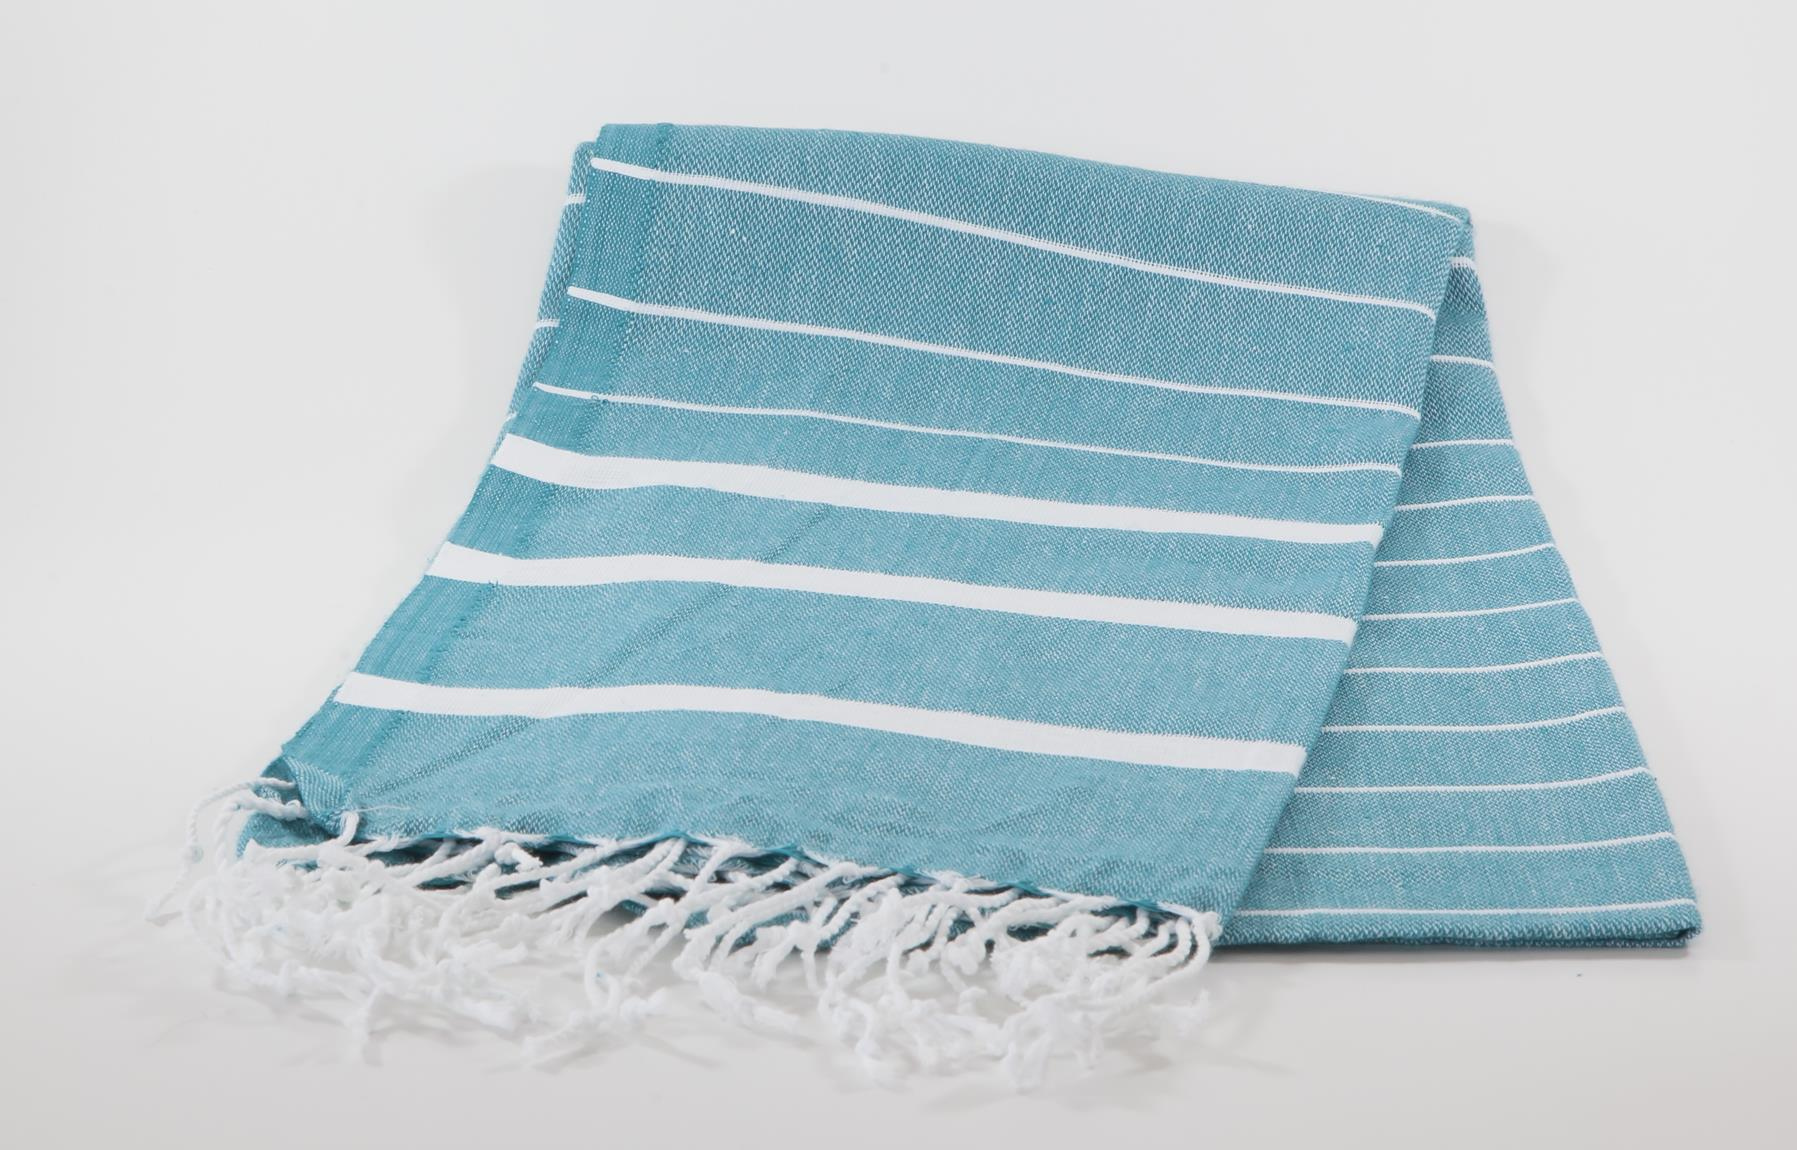 koton kulture toronto turkish towel infinity water aqua green or turquoise white stripped poncho with tassels for babies kids